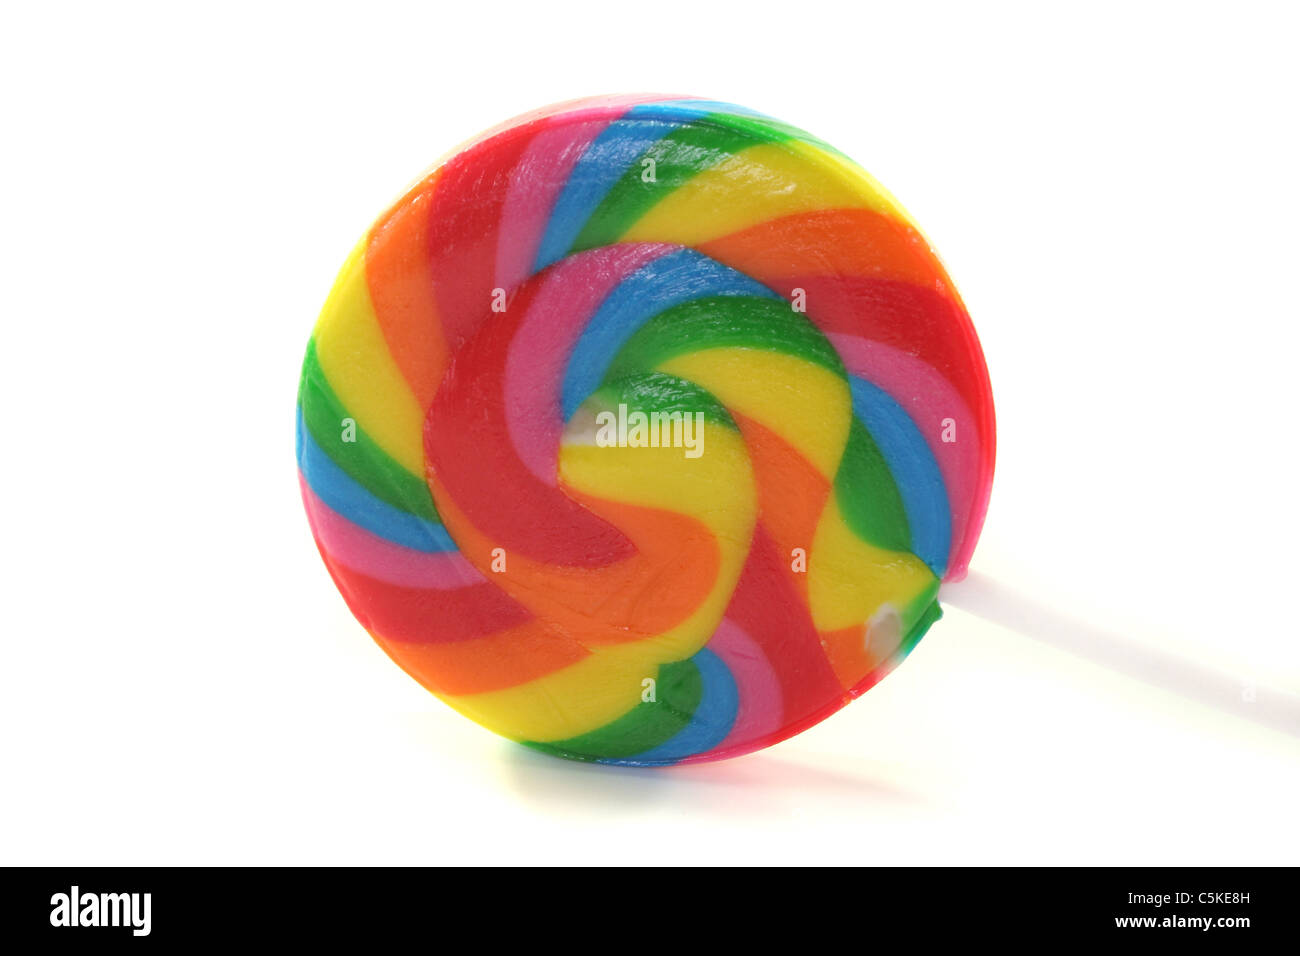 a colorful lollipops on a white background - Stock Image